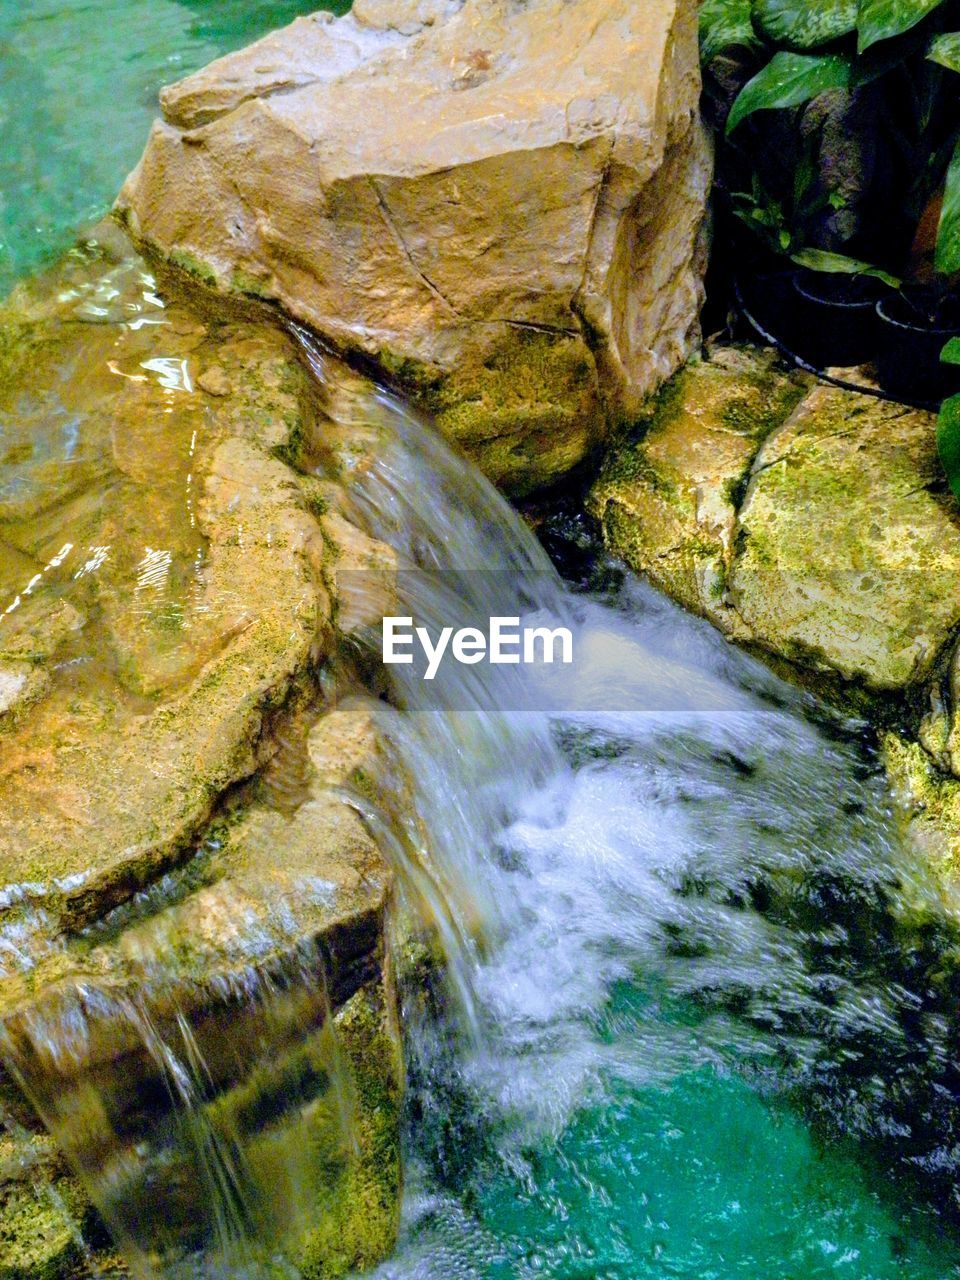 water, rock - object, nature, no people, beauty in nature, day, motion, outdoors, waterfall, tranquility, scenics, close-up